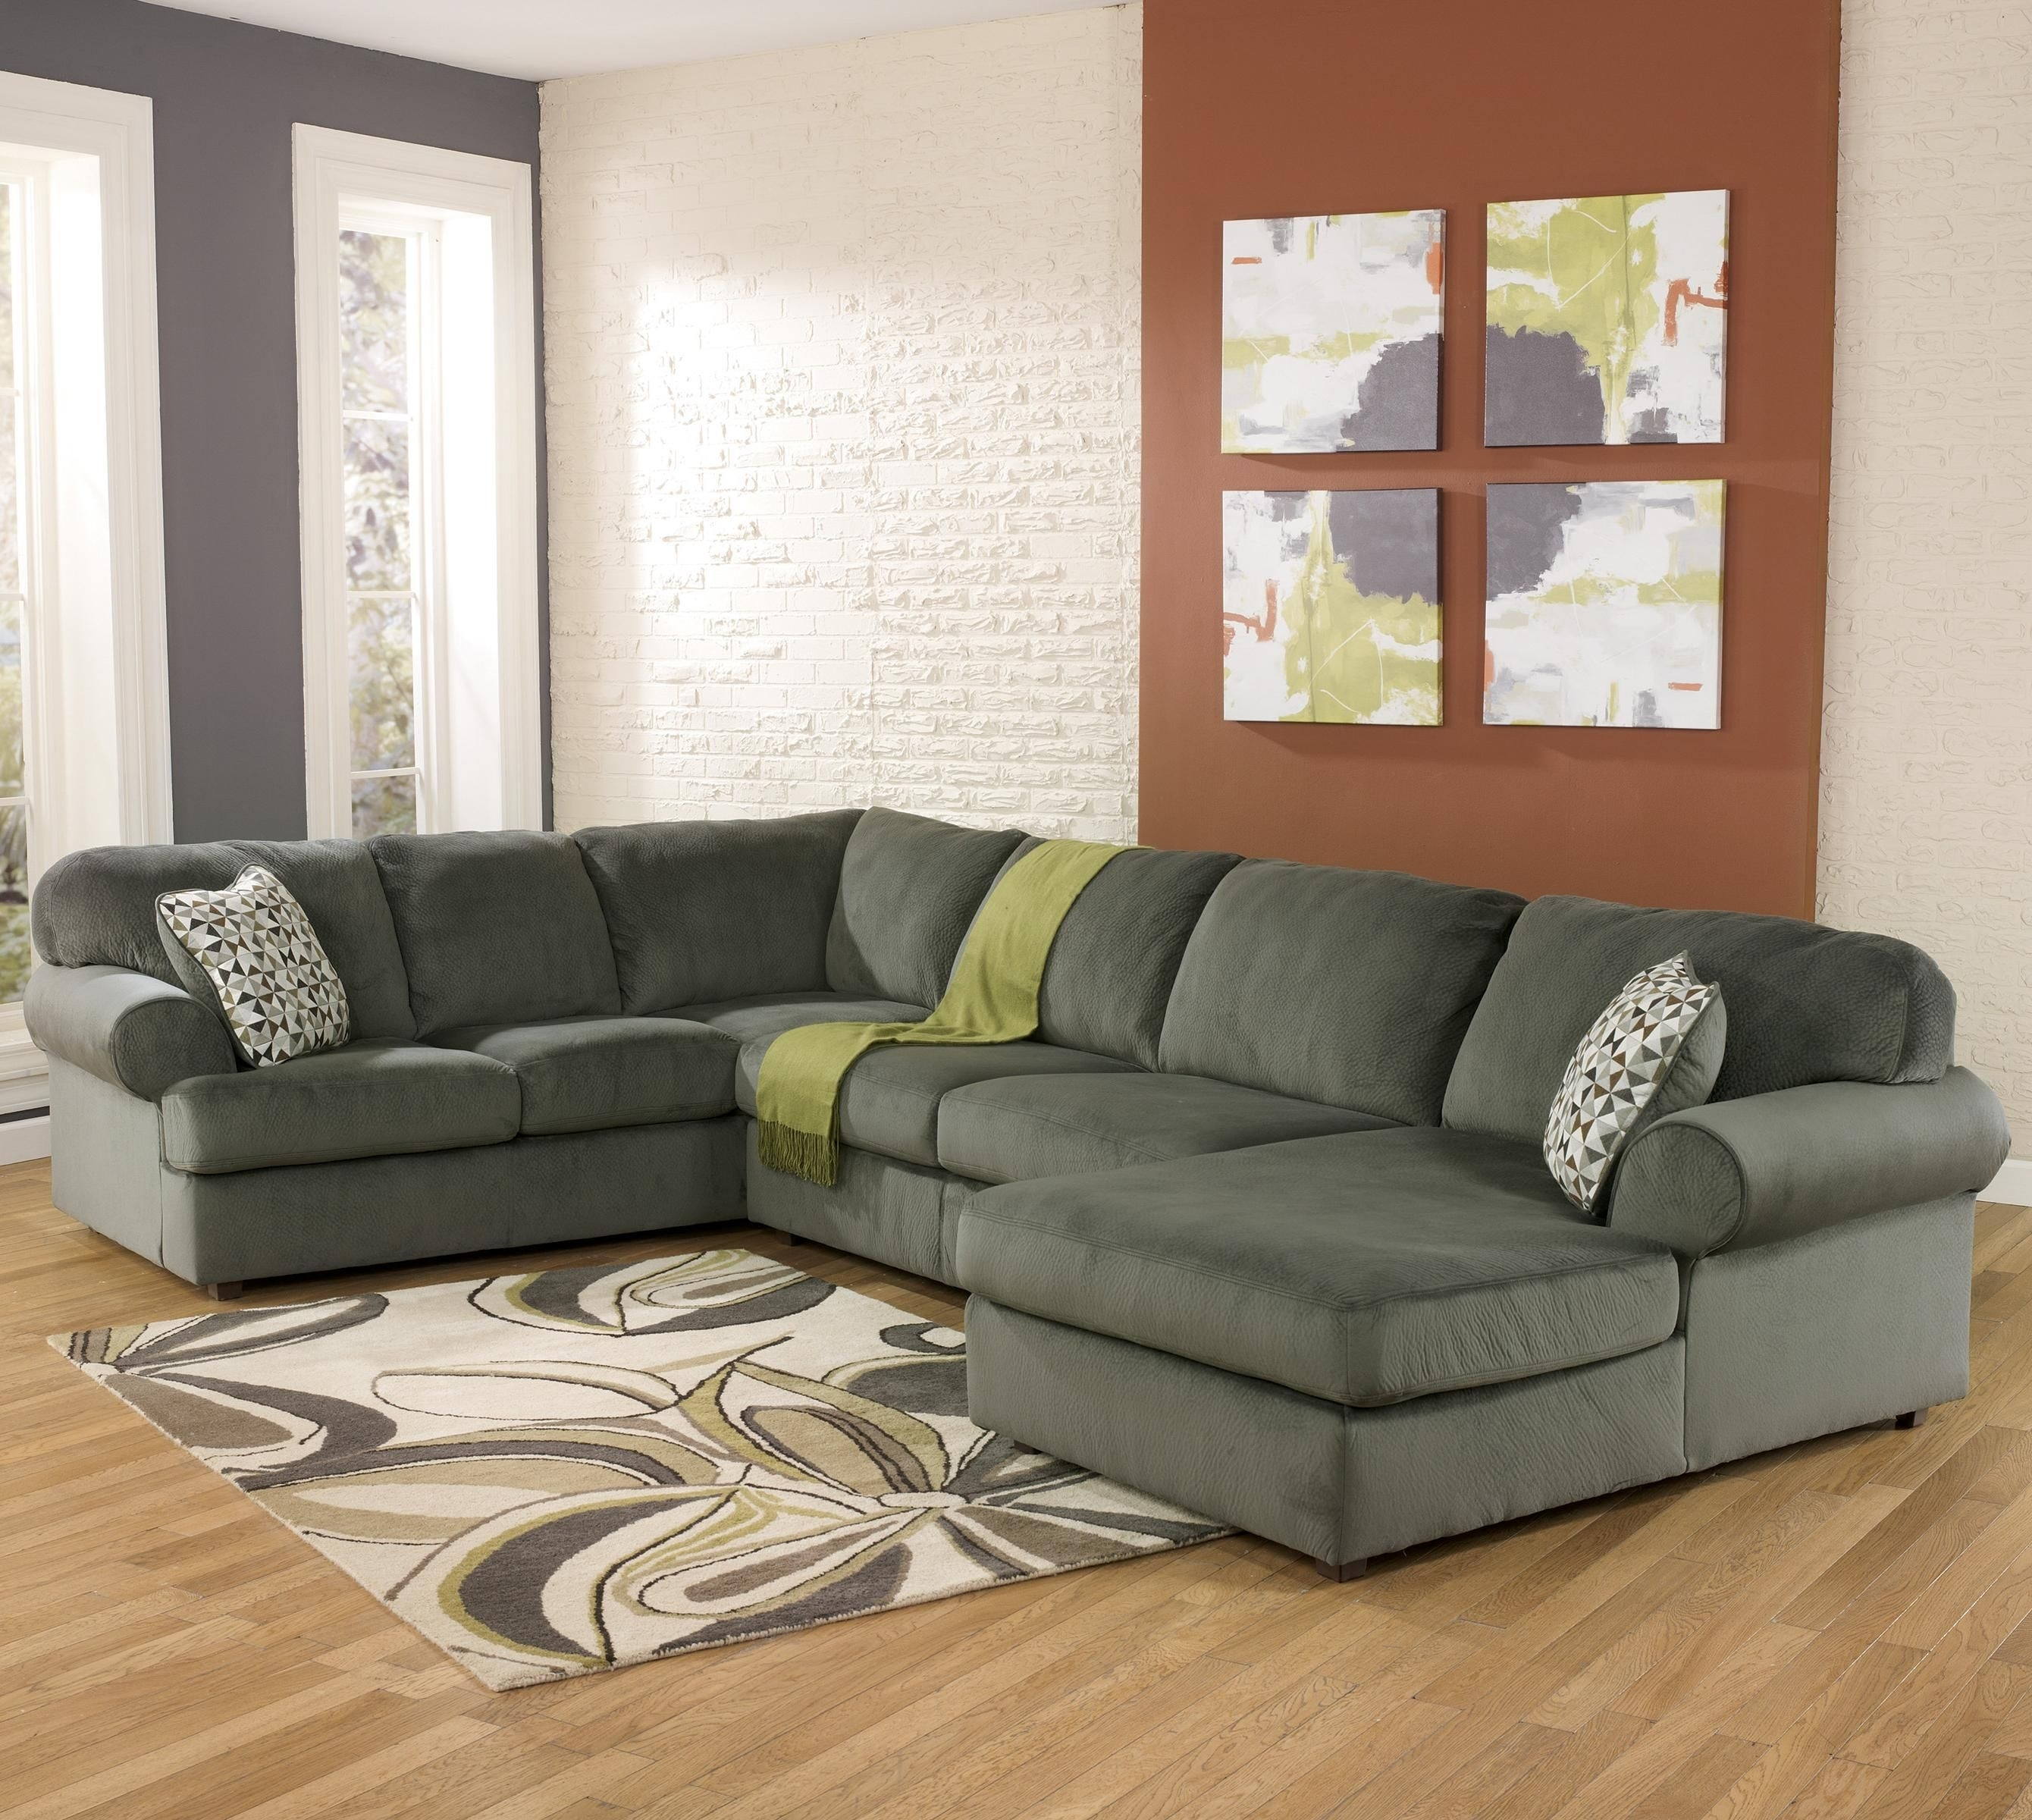 Jessa Place - Pewter Casual Sectional Sofa With Right Chaise regarding Pensacola Fl Sectional Sofas